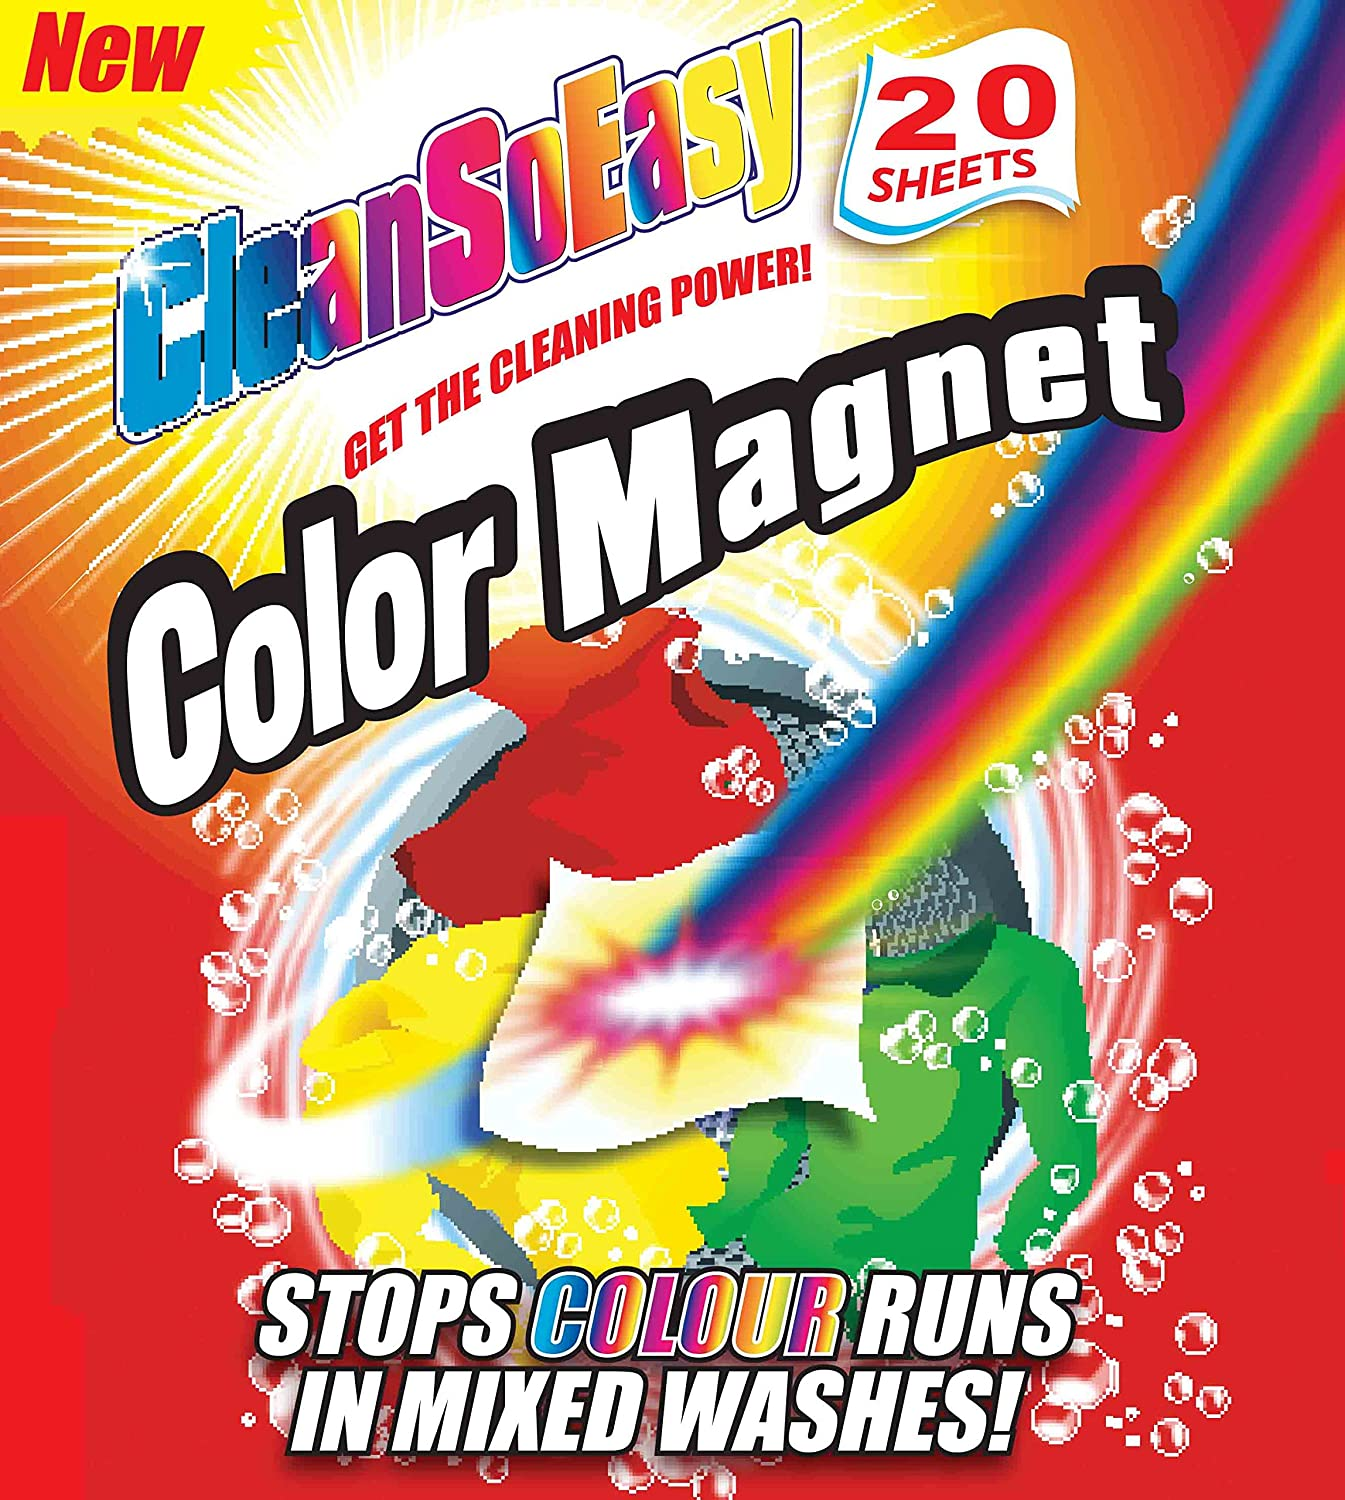 Colour catcher sheets - Buy Meded Color Magnet 3 Boxes Online At Low Prices In India Amazon In